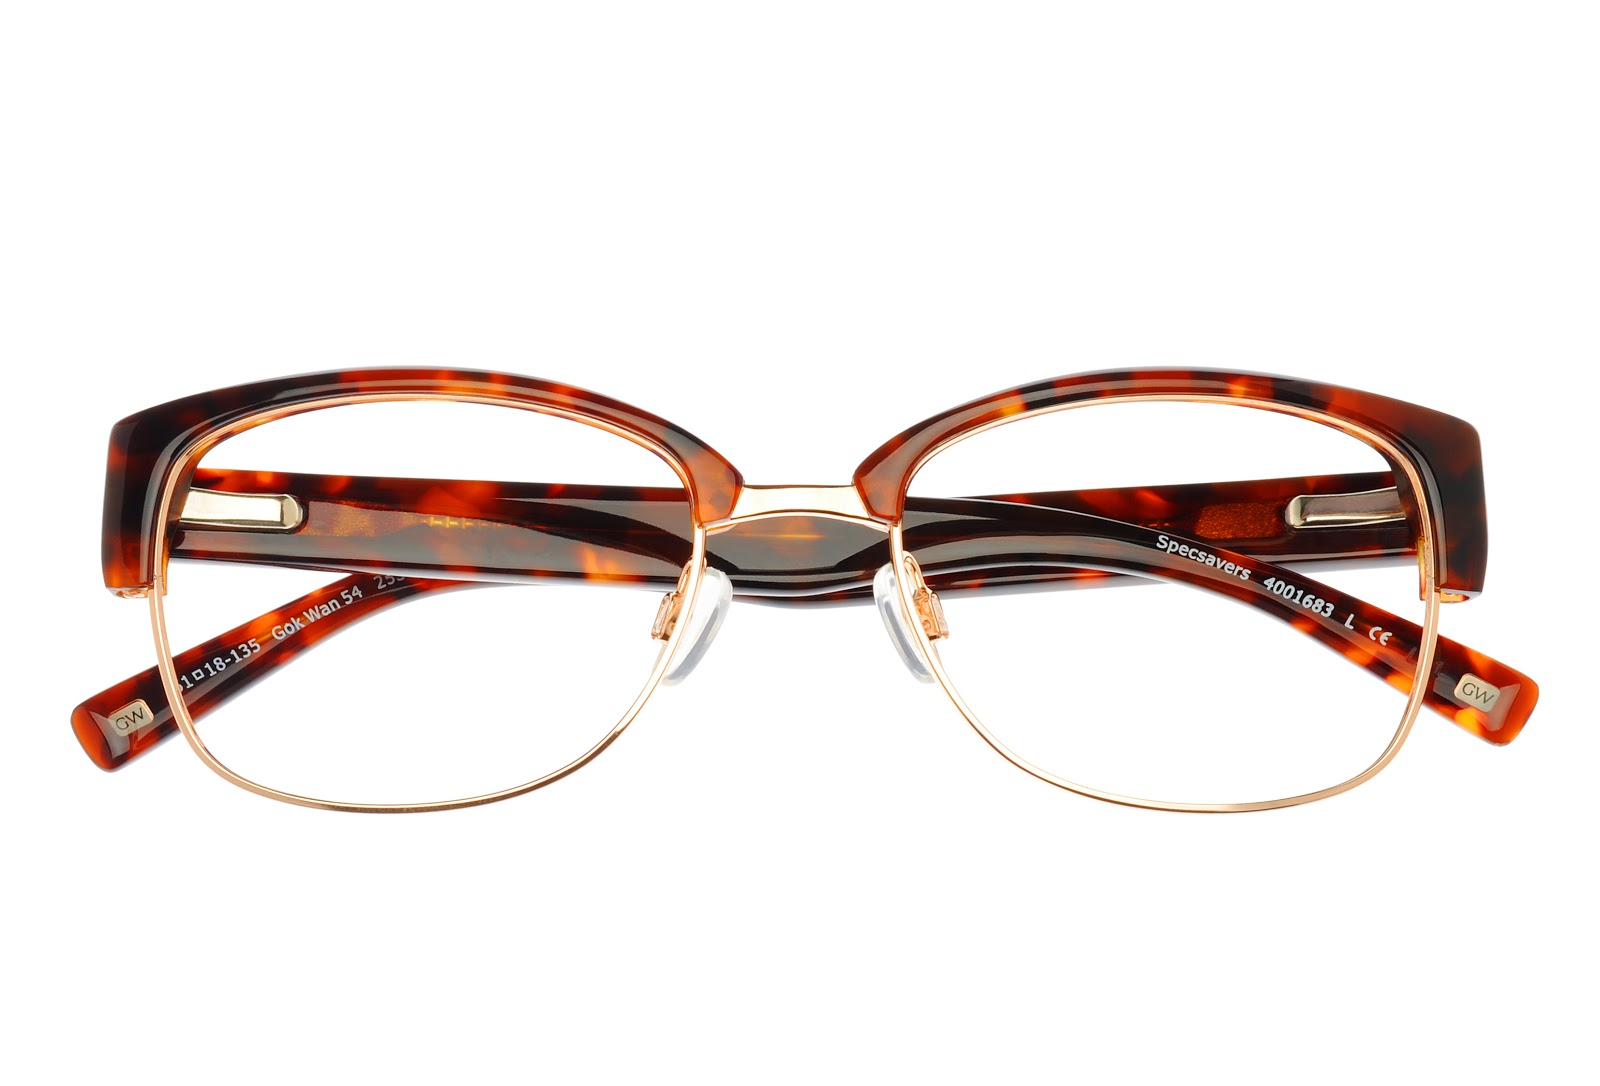 get the look for less with specsavers glasses style